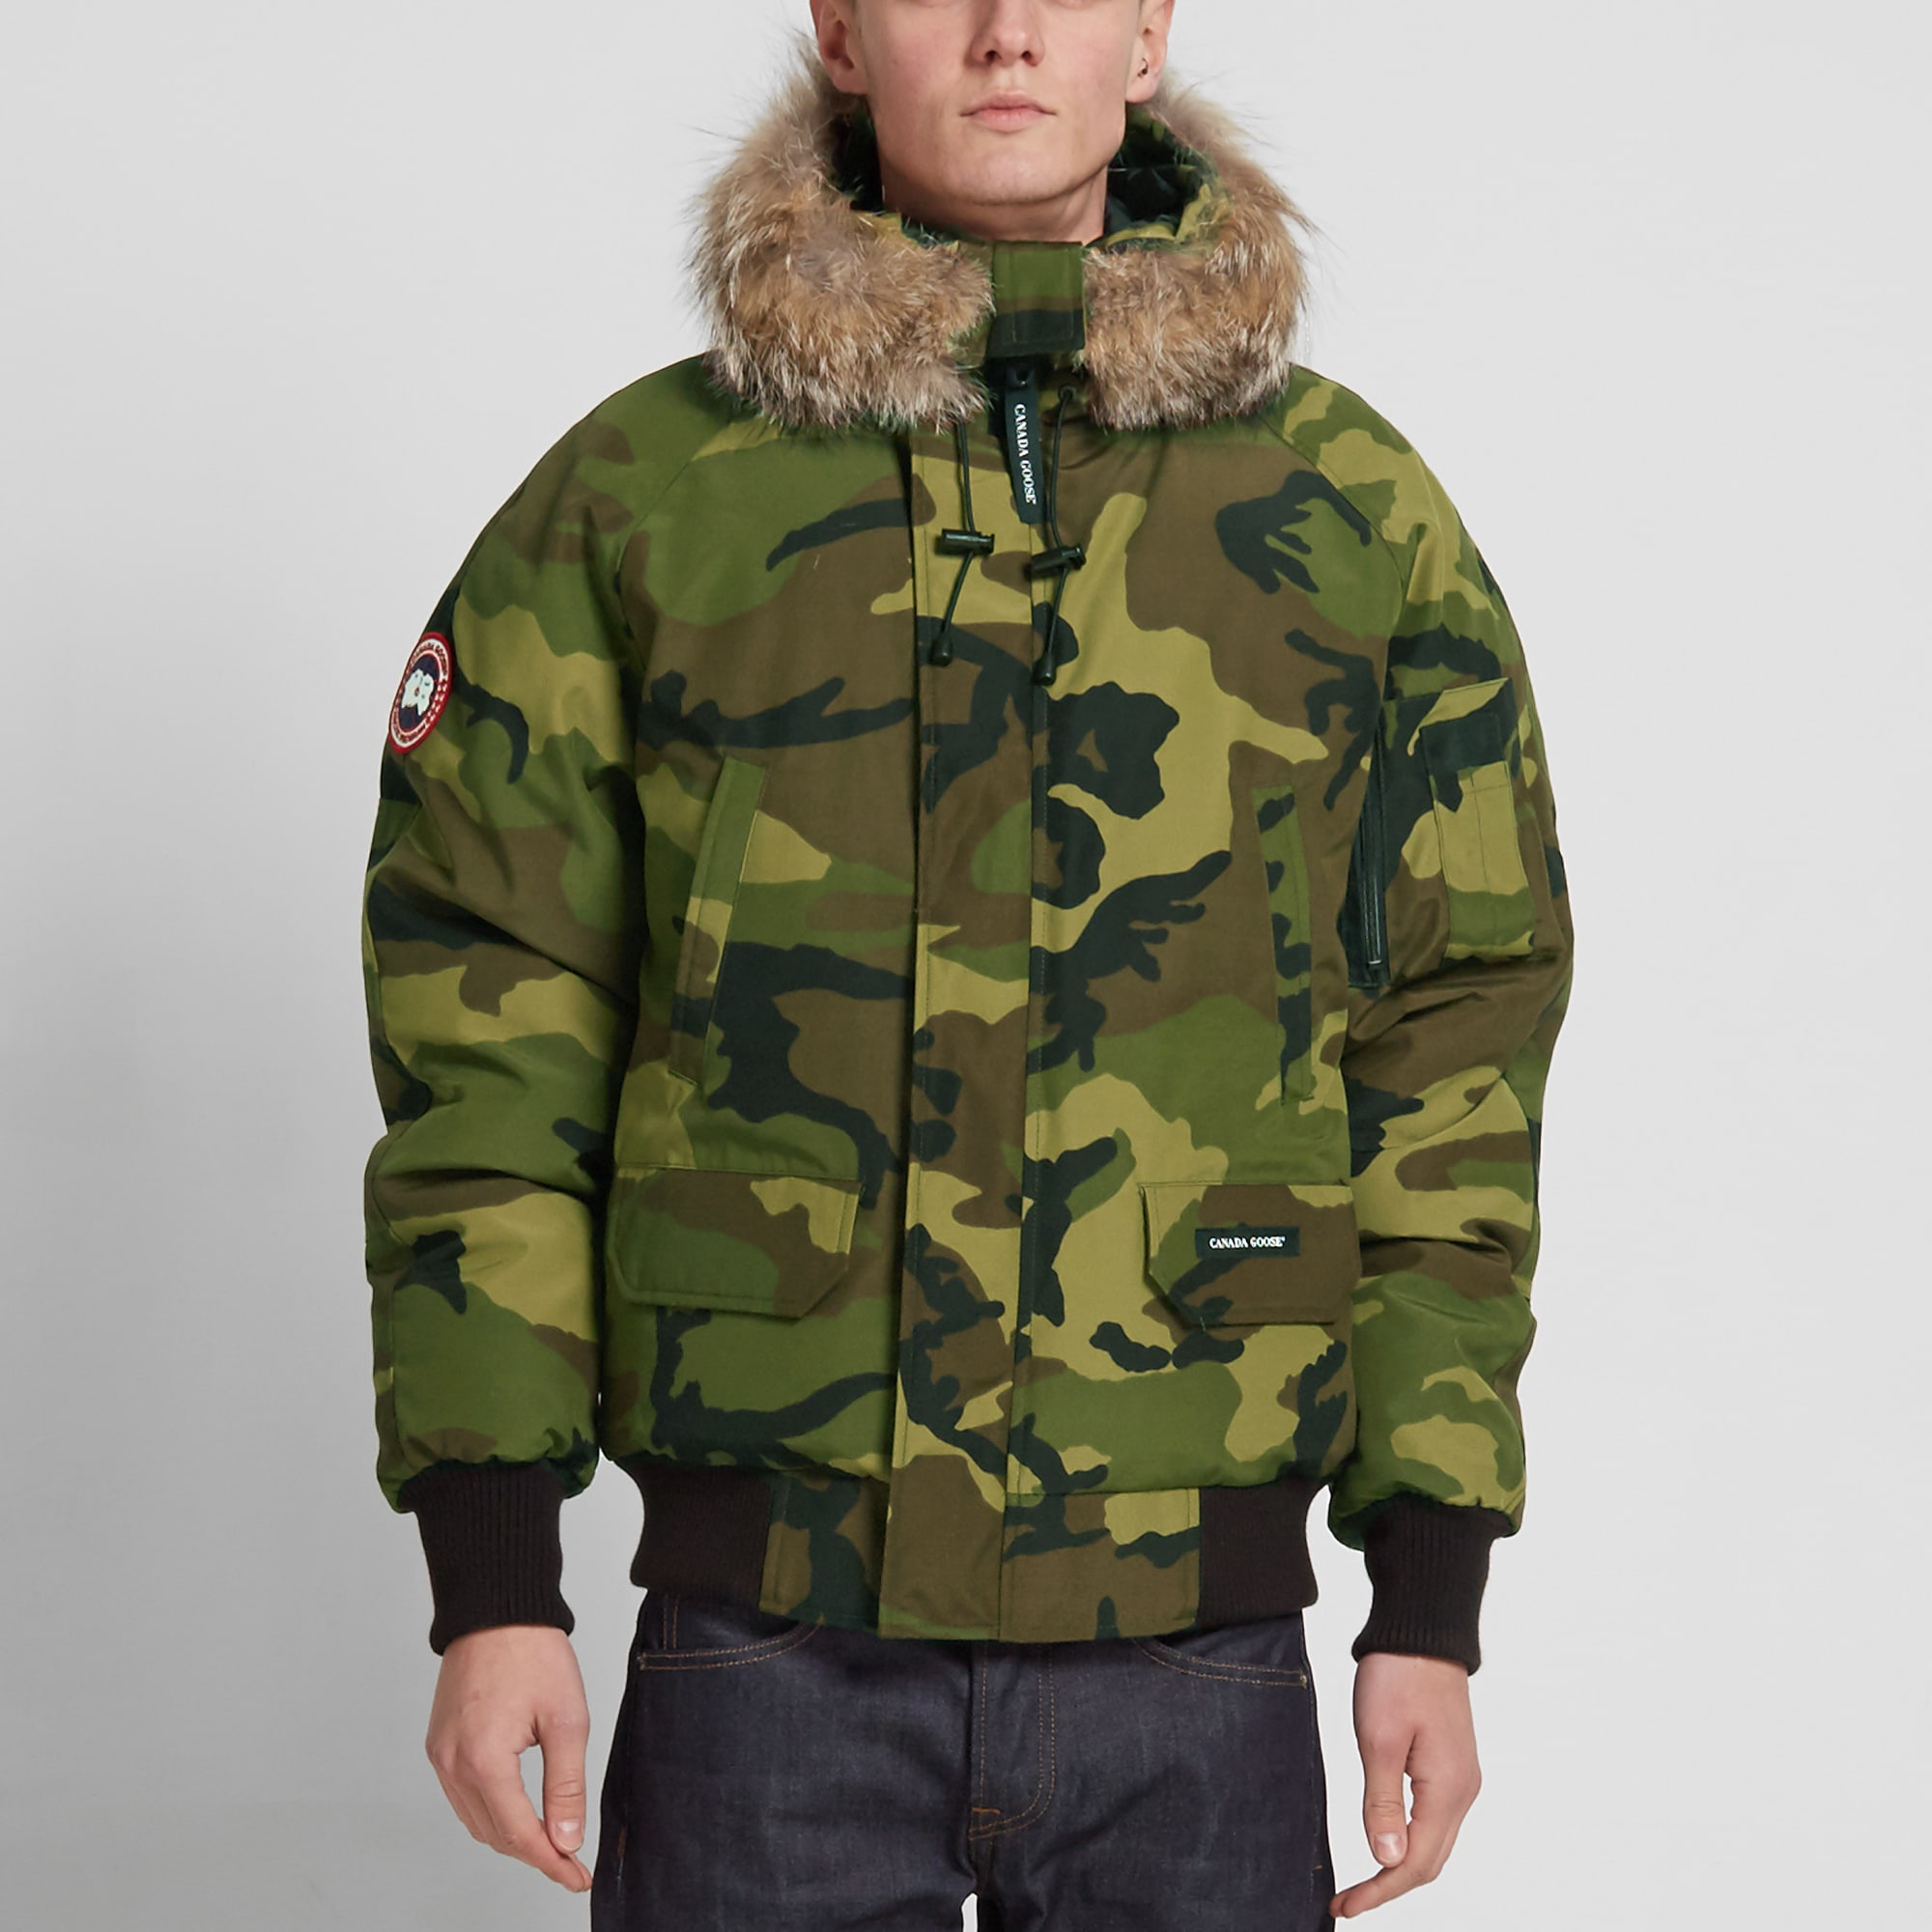 Canada Goose womens sale store - Canada Goose Chilliwack Bomber (Classic Camo)